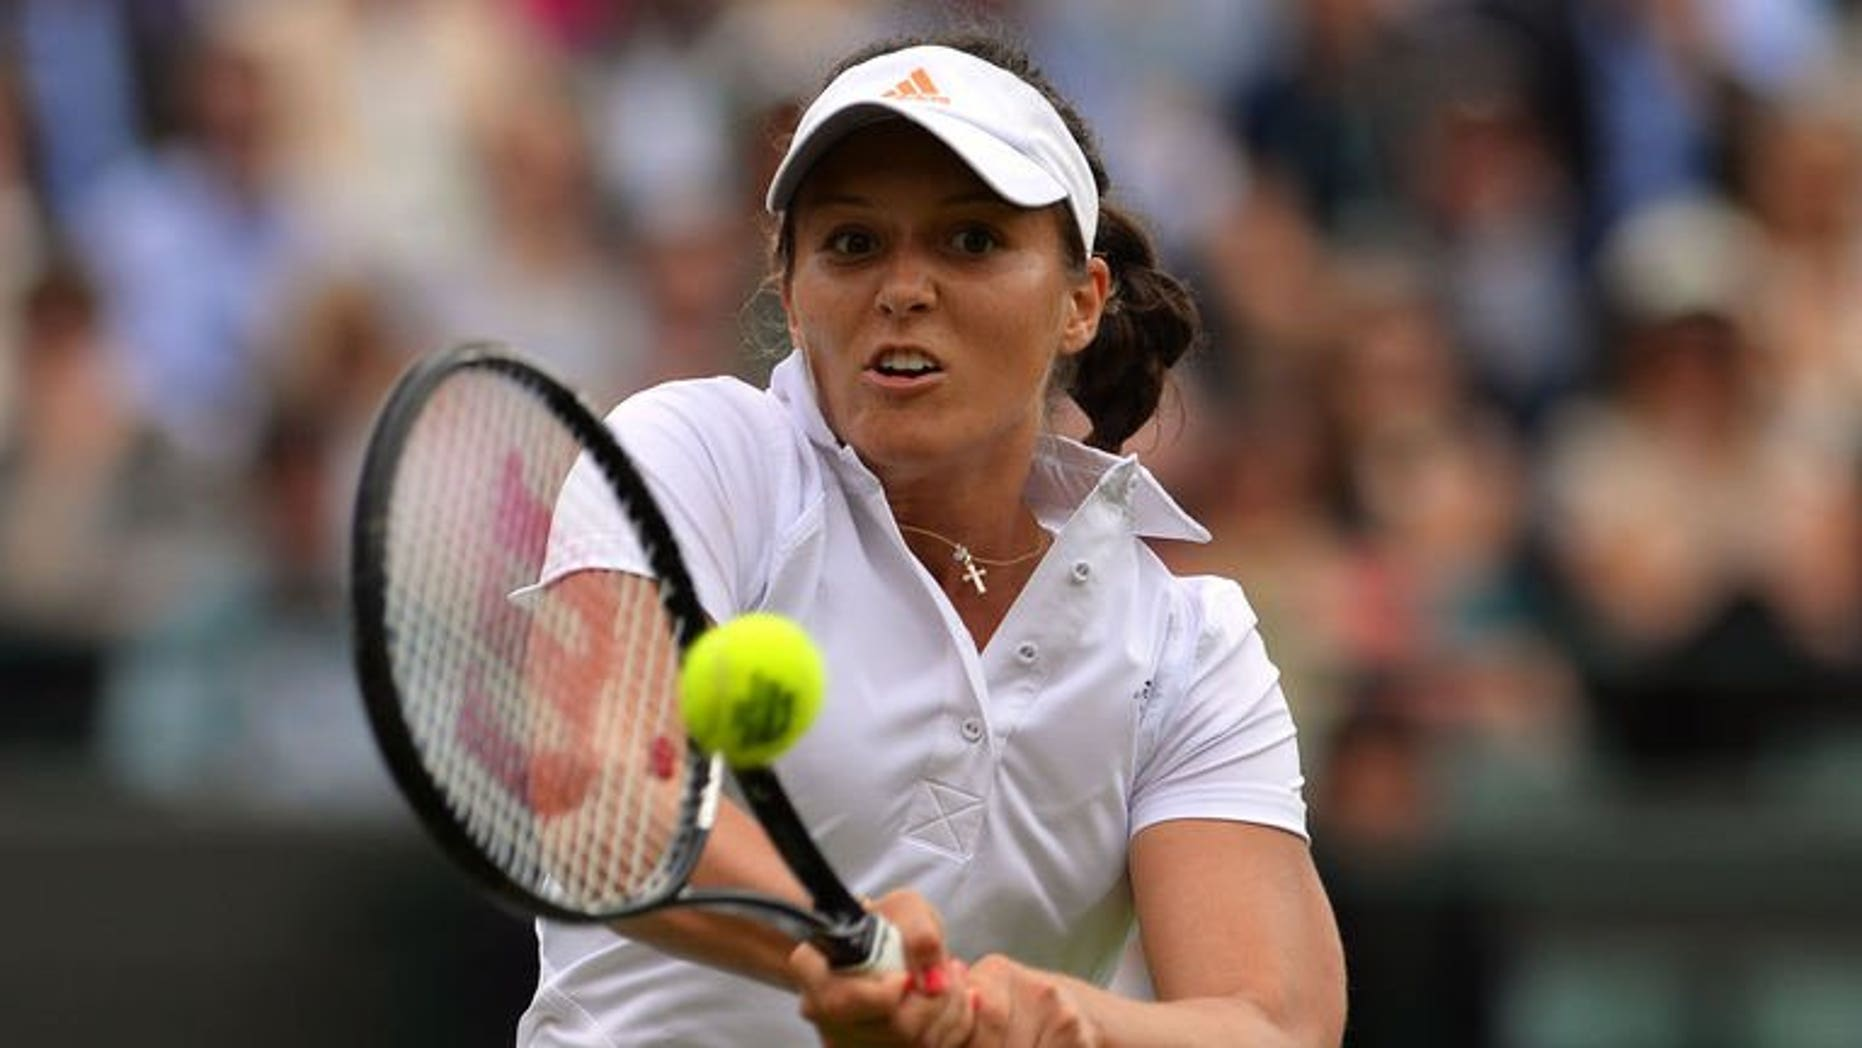 Britain's Laura Robson returns on her way to beating Russia's Maria Kirilenko during their women's first round match on day two of the 2013 Wimbledon Championships tennis tournament at the All England Club in Wimbledon, southwest London, on June 25, 2013. Robson won 6-3, 6-4.